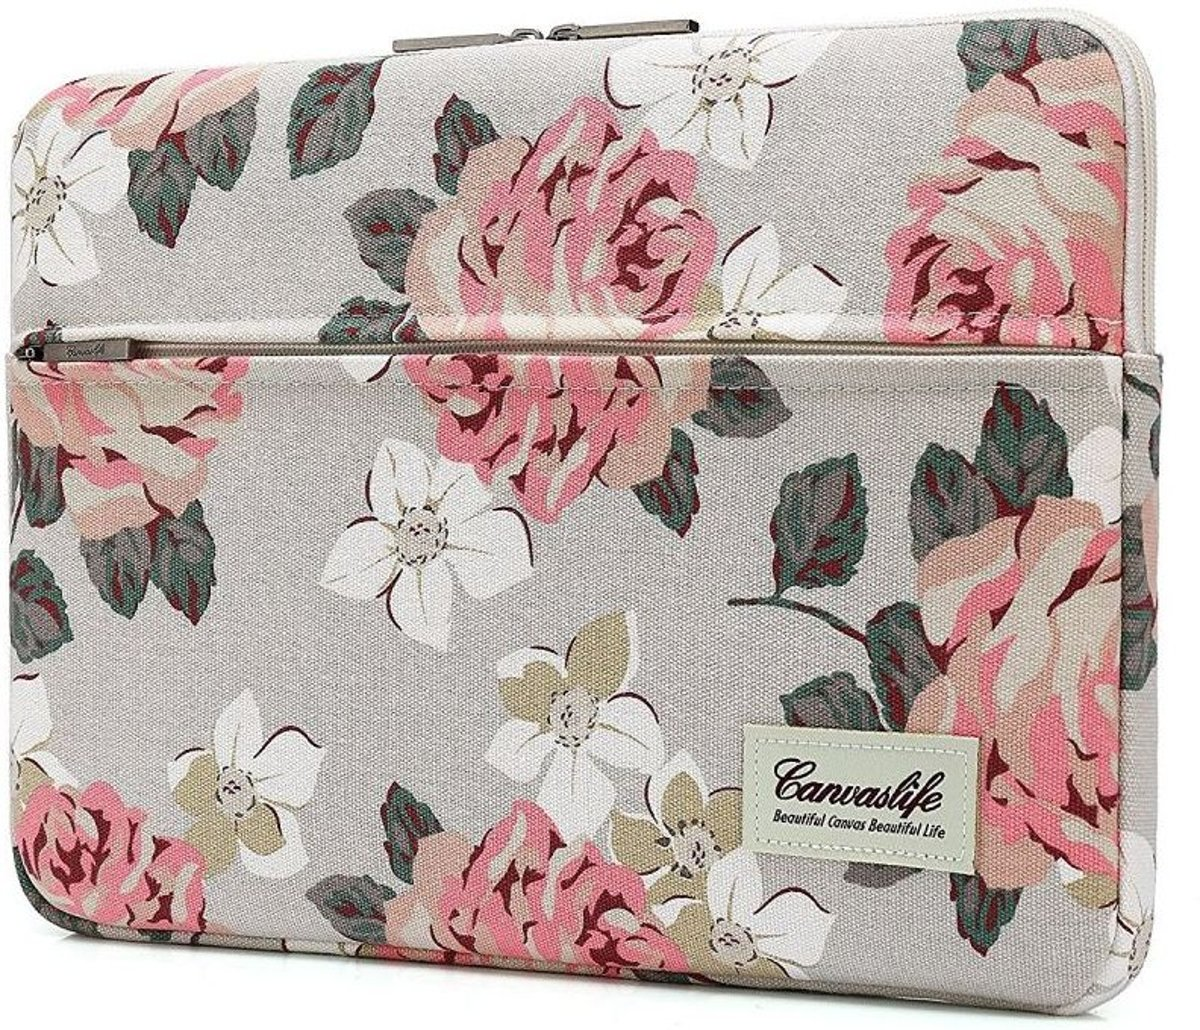 Canvaslife MacBook Pro Hoes / Sleeve 15 inch - White Rose